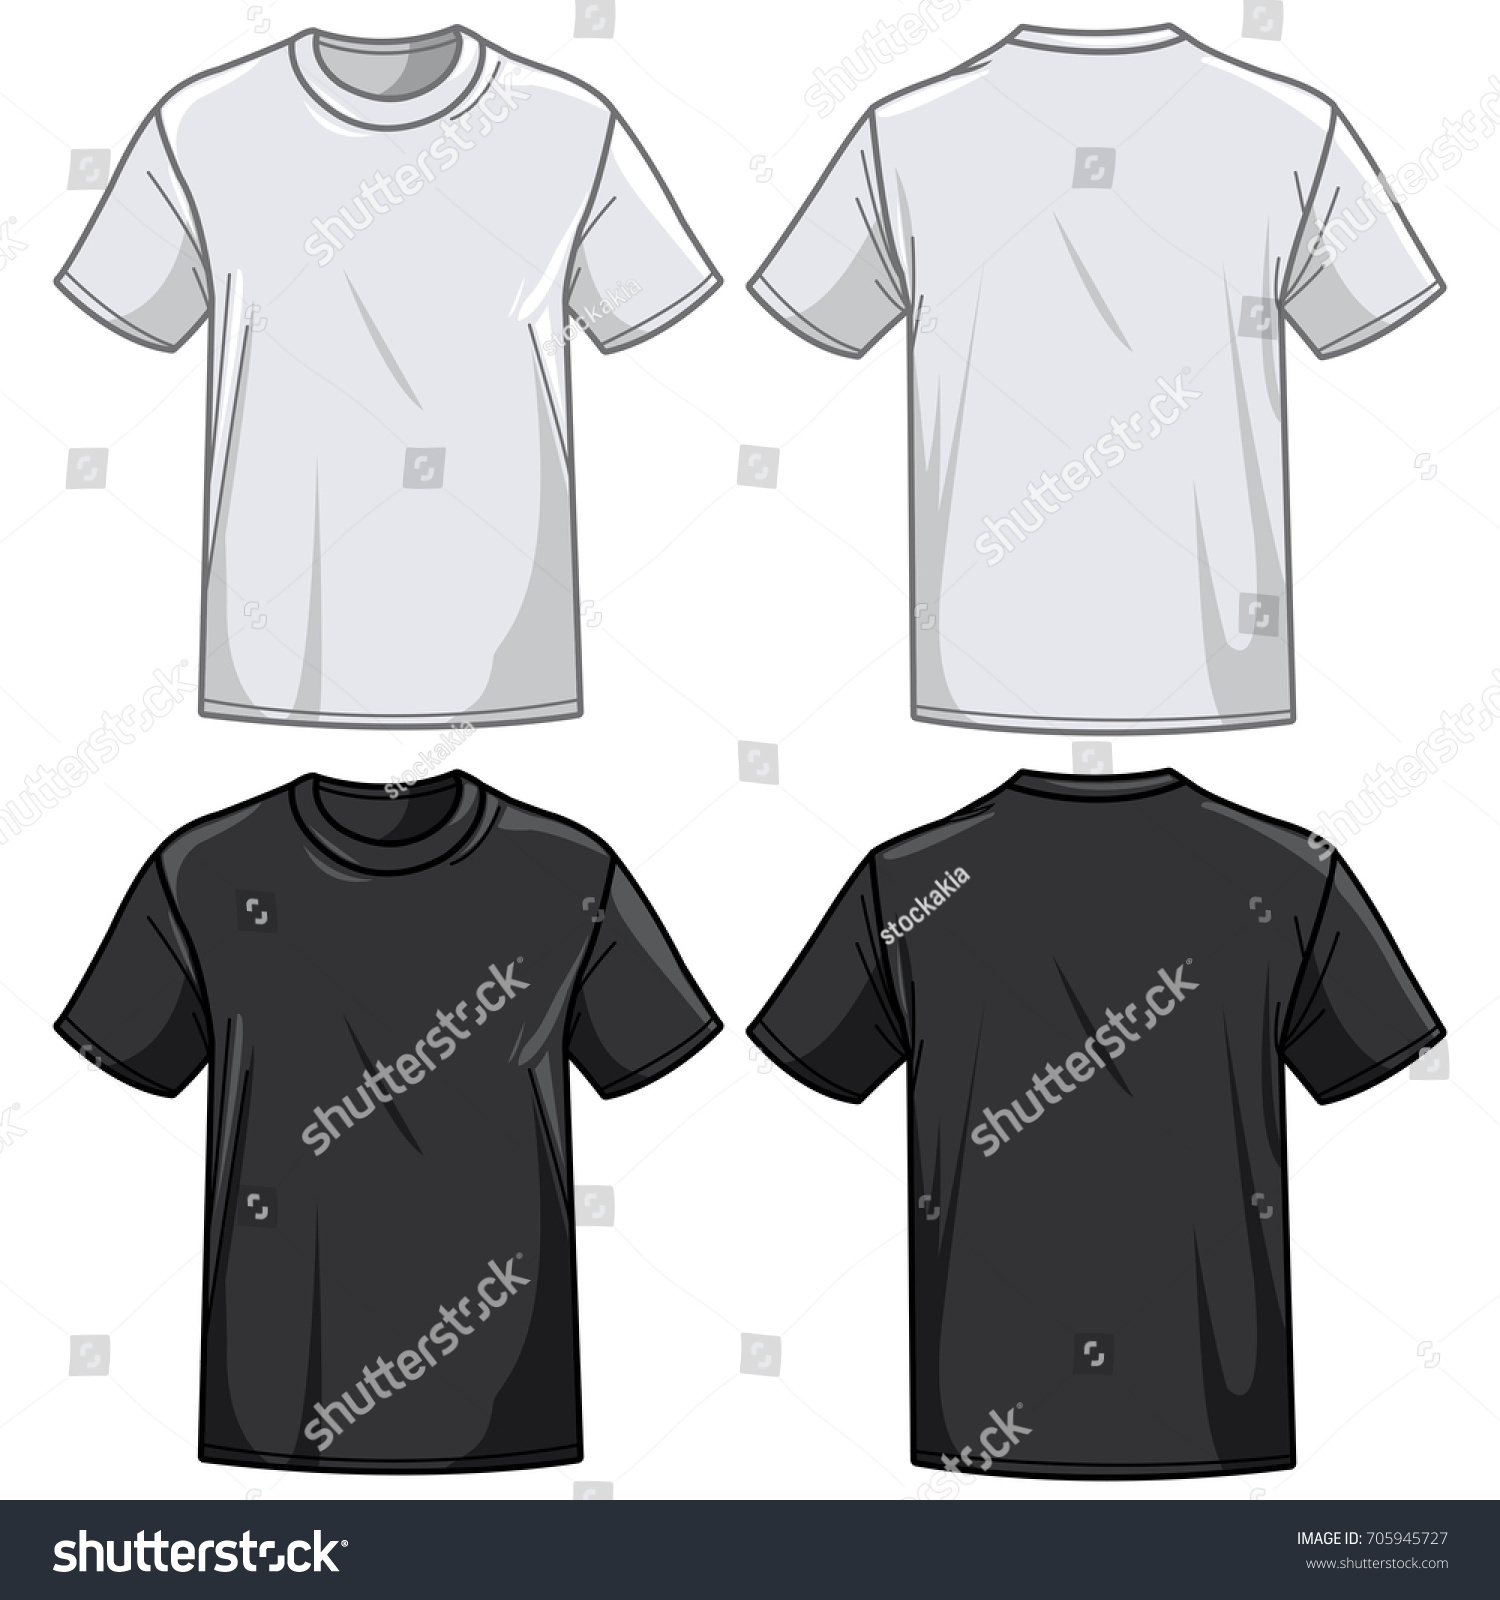 Black t shirt vector front and back - Front And Back View Of A Black And A White T Shirt Vector Illustration